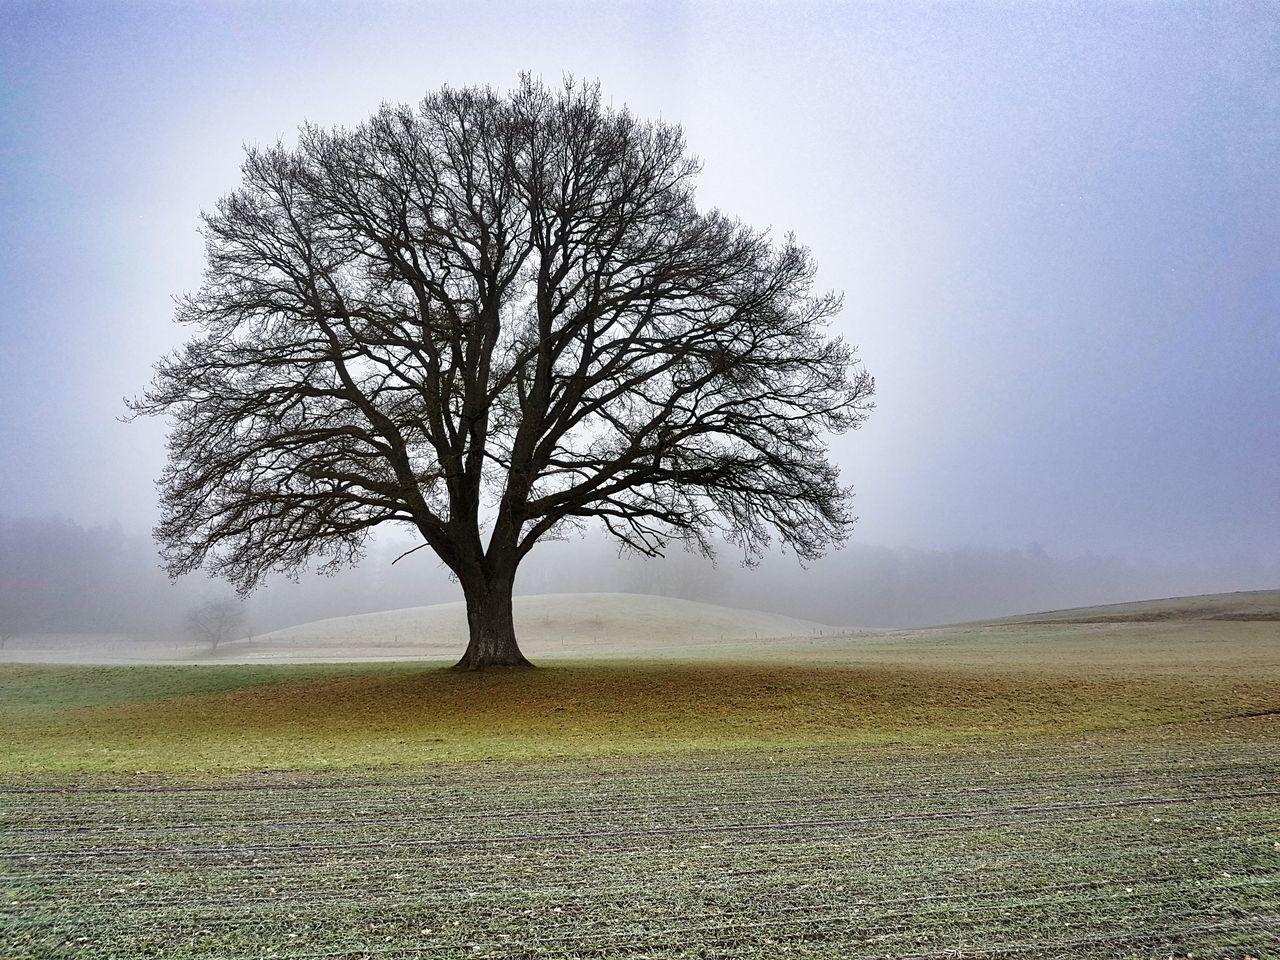 Single Tree Tree Field Outdoors Grass Landscape No People Tranquility Beauty In Nature Nature Sky Fog